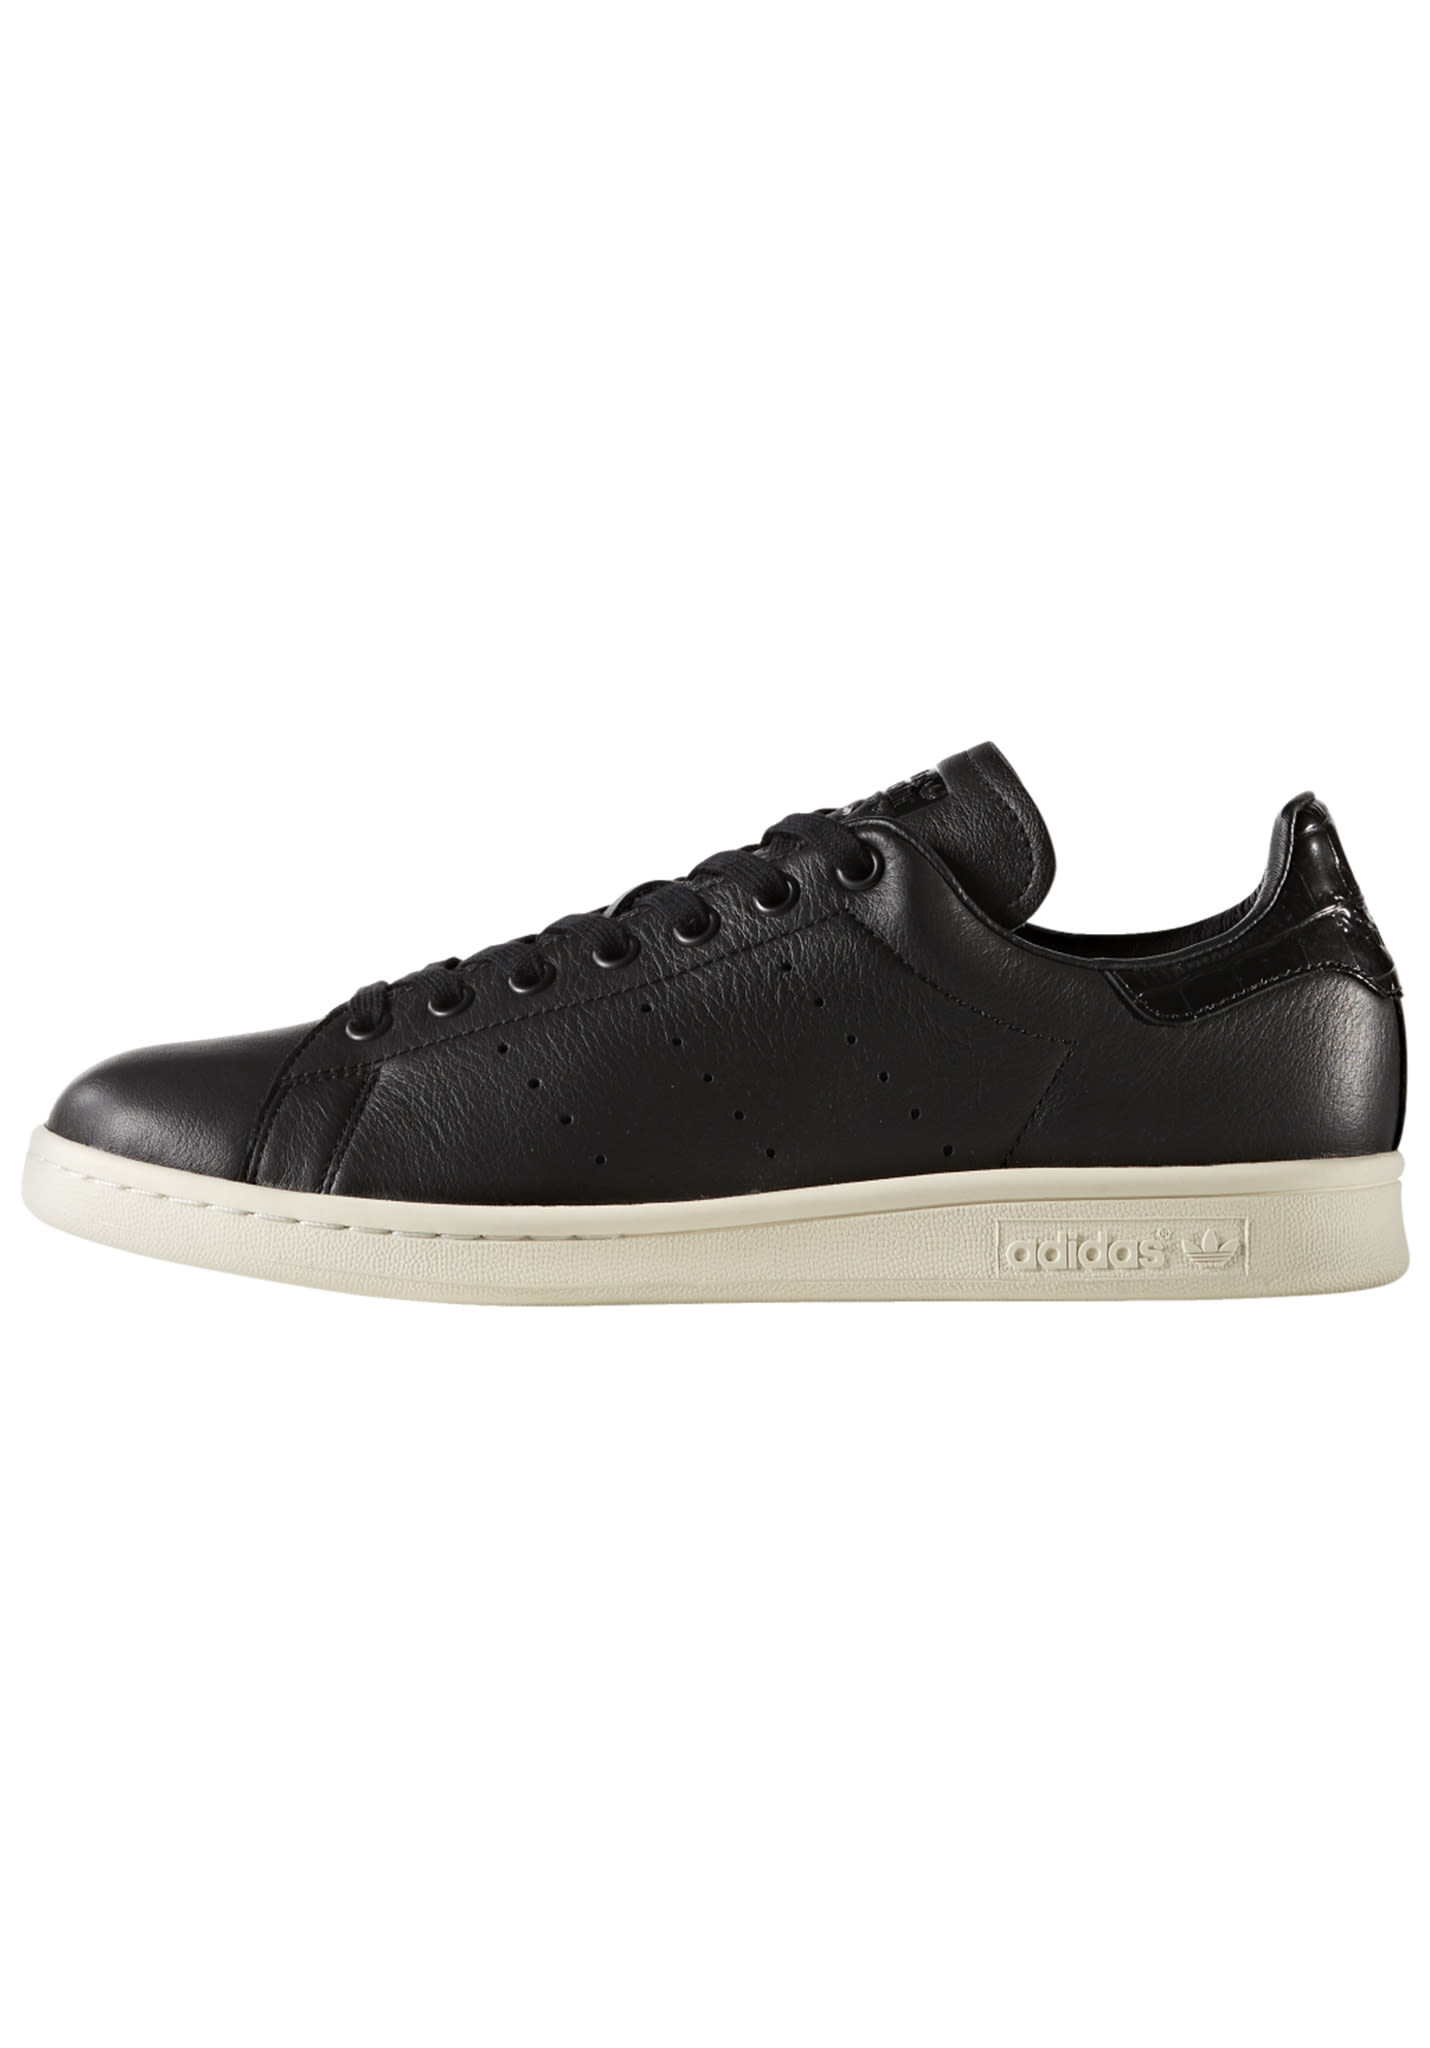 finest selection fc191 30355 ADIDAS ORIGINALS Stan Smith - Sneakers for Men - Black - Planet Sports